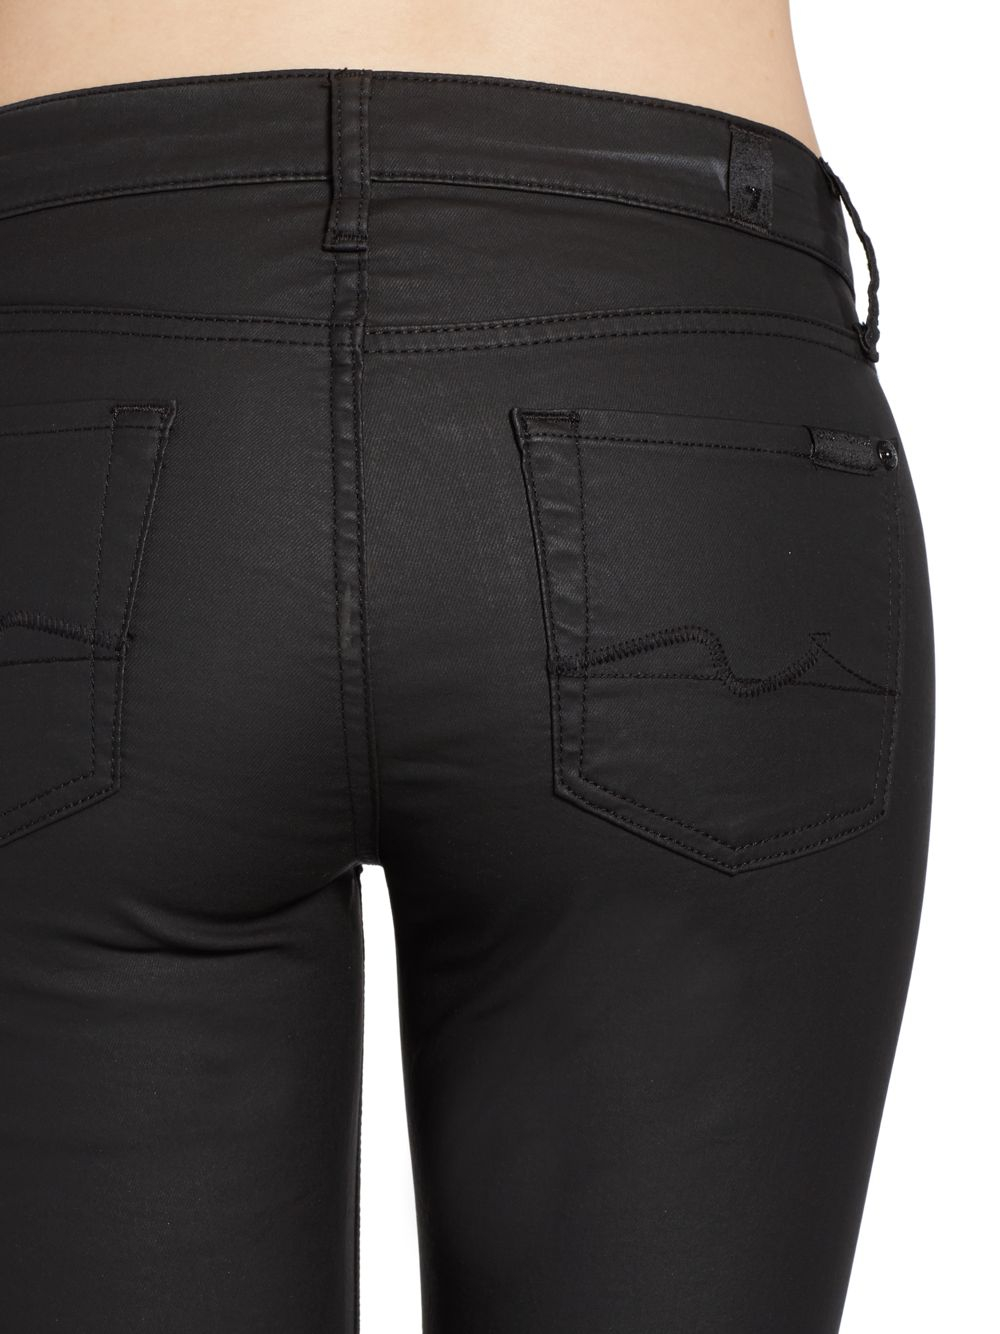 Find black coated skinny jeans at ShopStyle. Shop the latest collection of black coated skinny jeans from the most popular stores - all in one place.